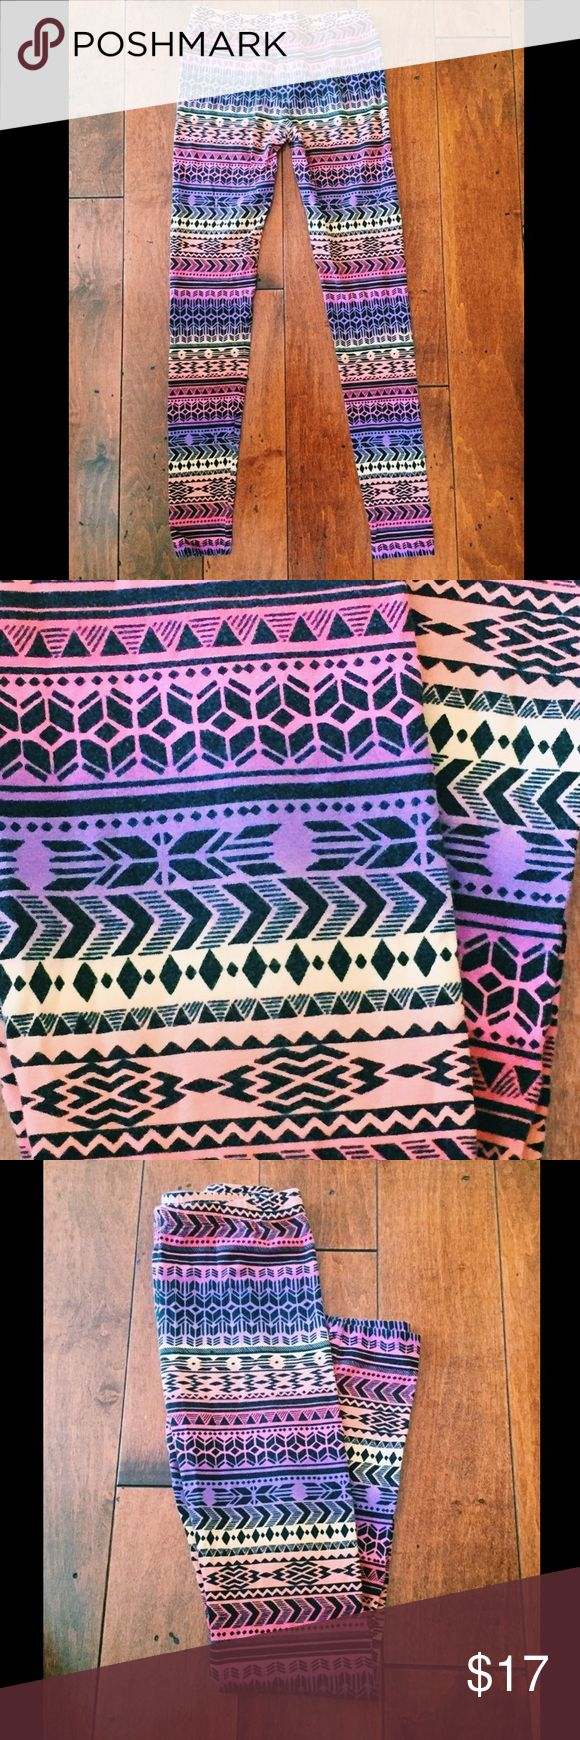 Forever 21 Colorful Aztec Print Leggings Forever 21 Colorful Aztec Print Leggings: Multicolored leggings with Aztec print design, gently worn, like new, light weight material, tue to size fit, made from 95% Cotton, 5% Elastic, elastic waistband and knit. Forever 21 Pants Leggings